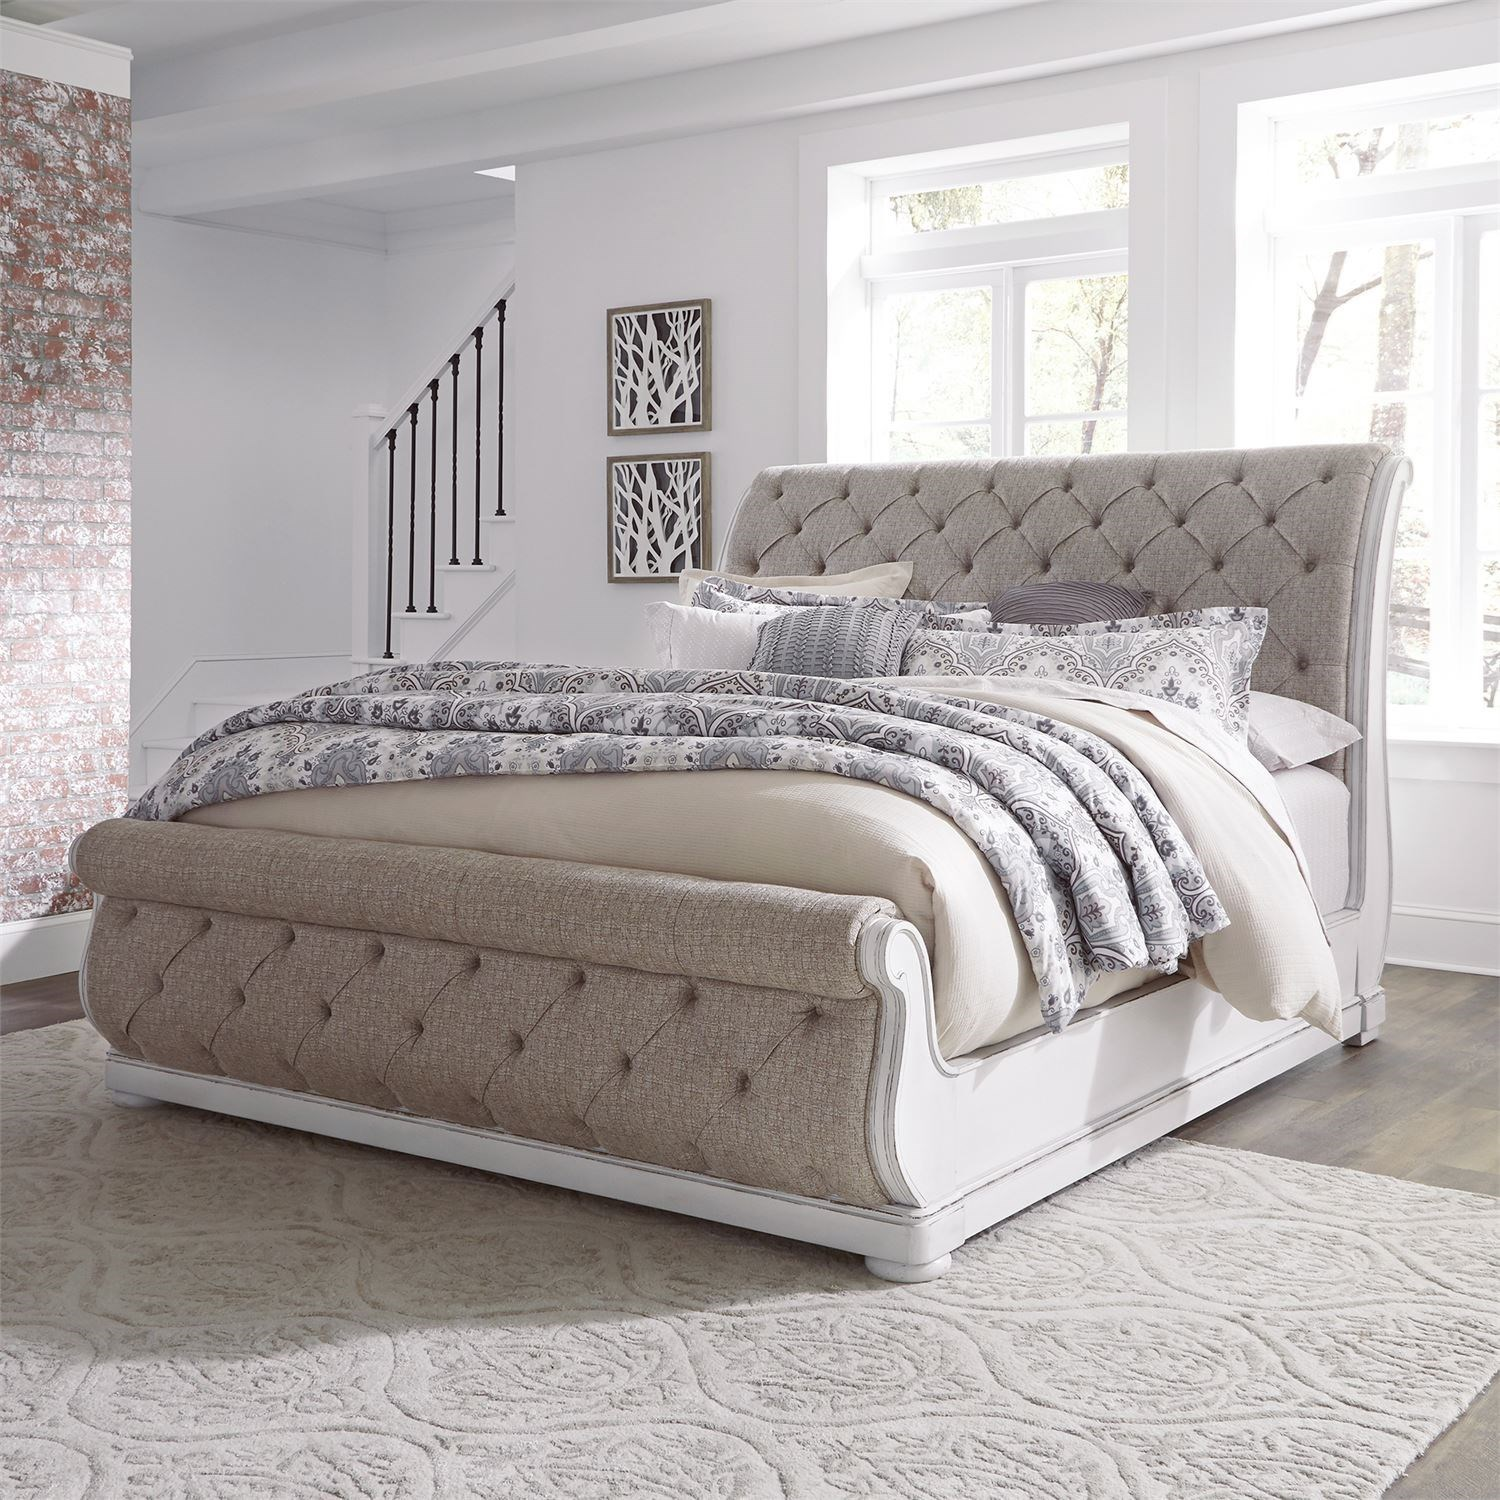 Magnolia Manor Queen Upholstered Sleigh Bed by Sarah Randolph Designs at Virginia Furniture Market